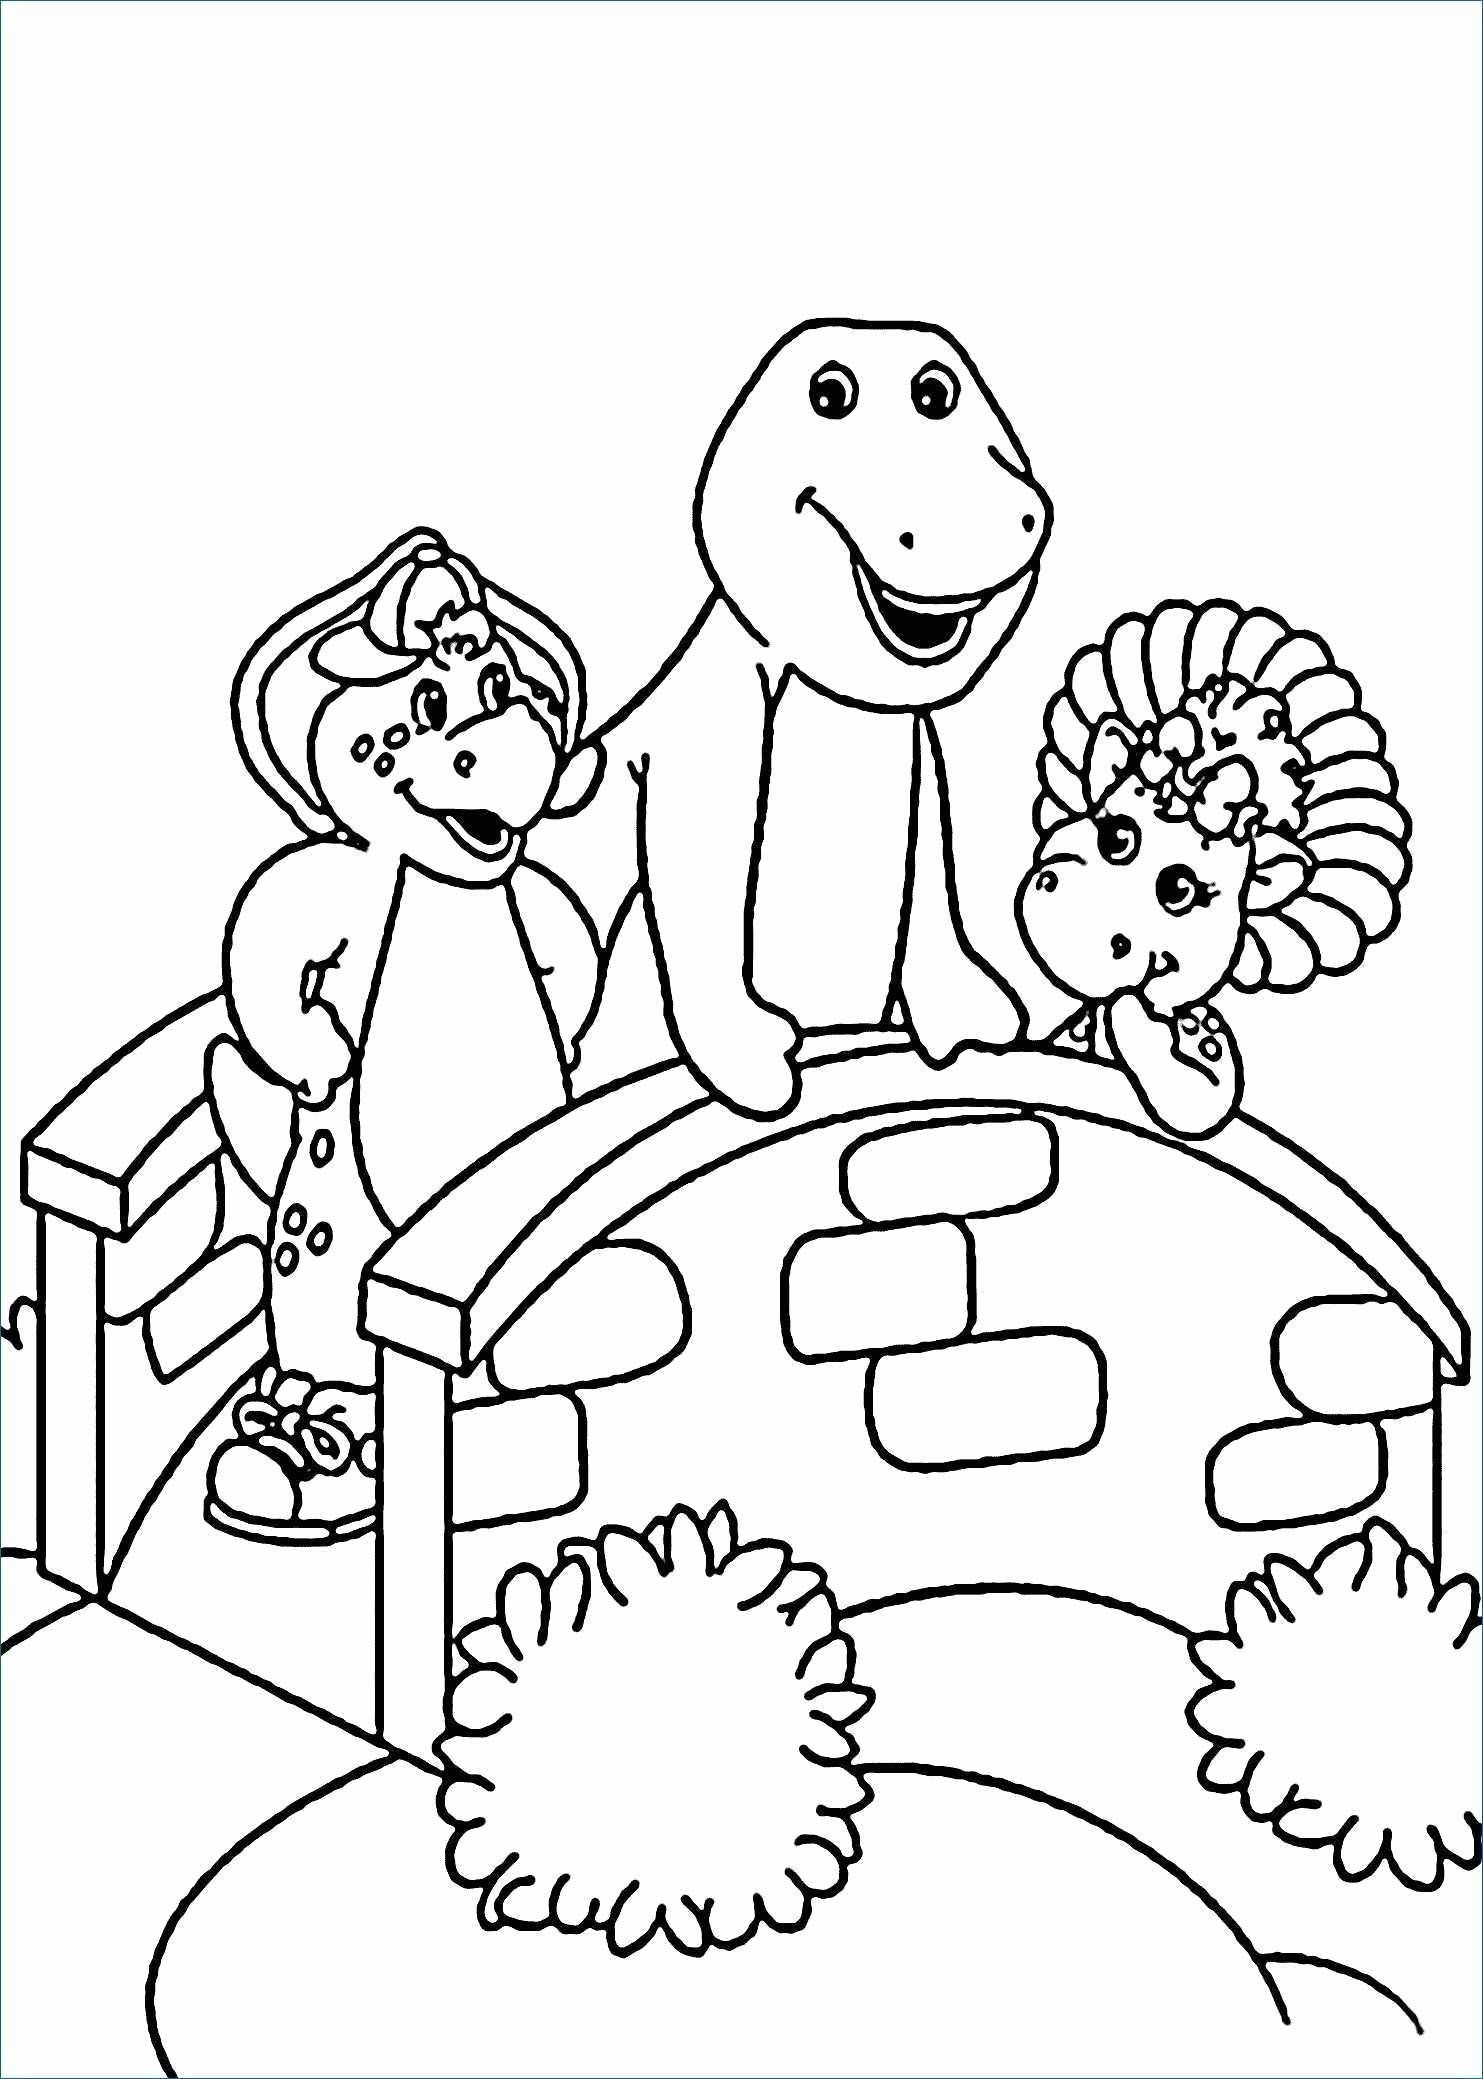 Free Printable Coloring Pages Halloween Best Of Lovely Black And